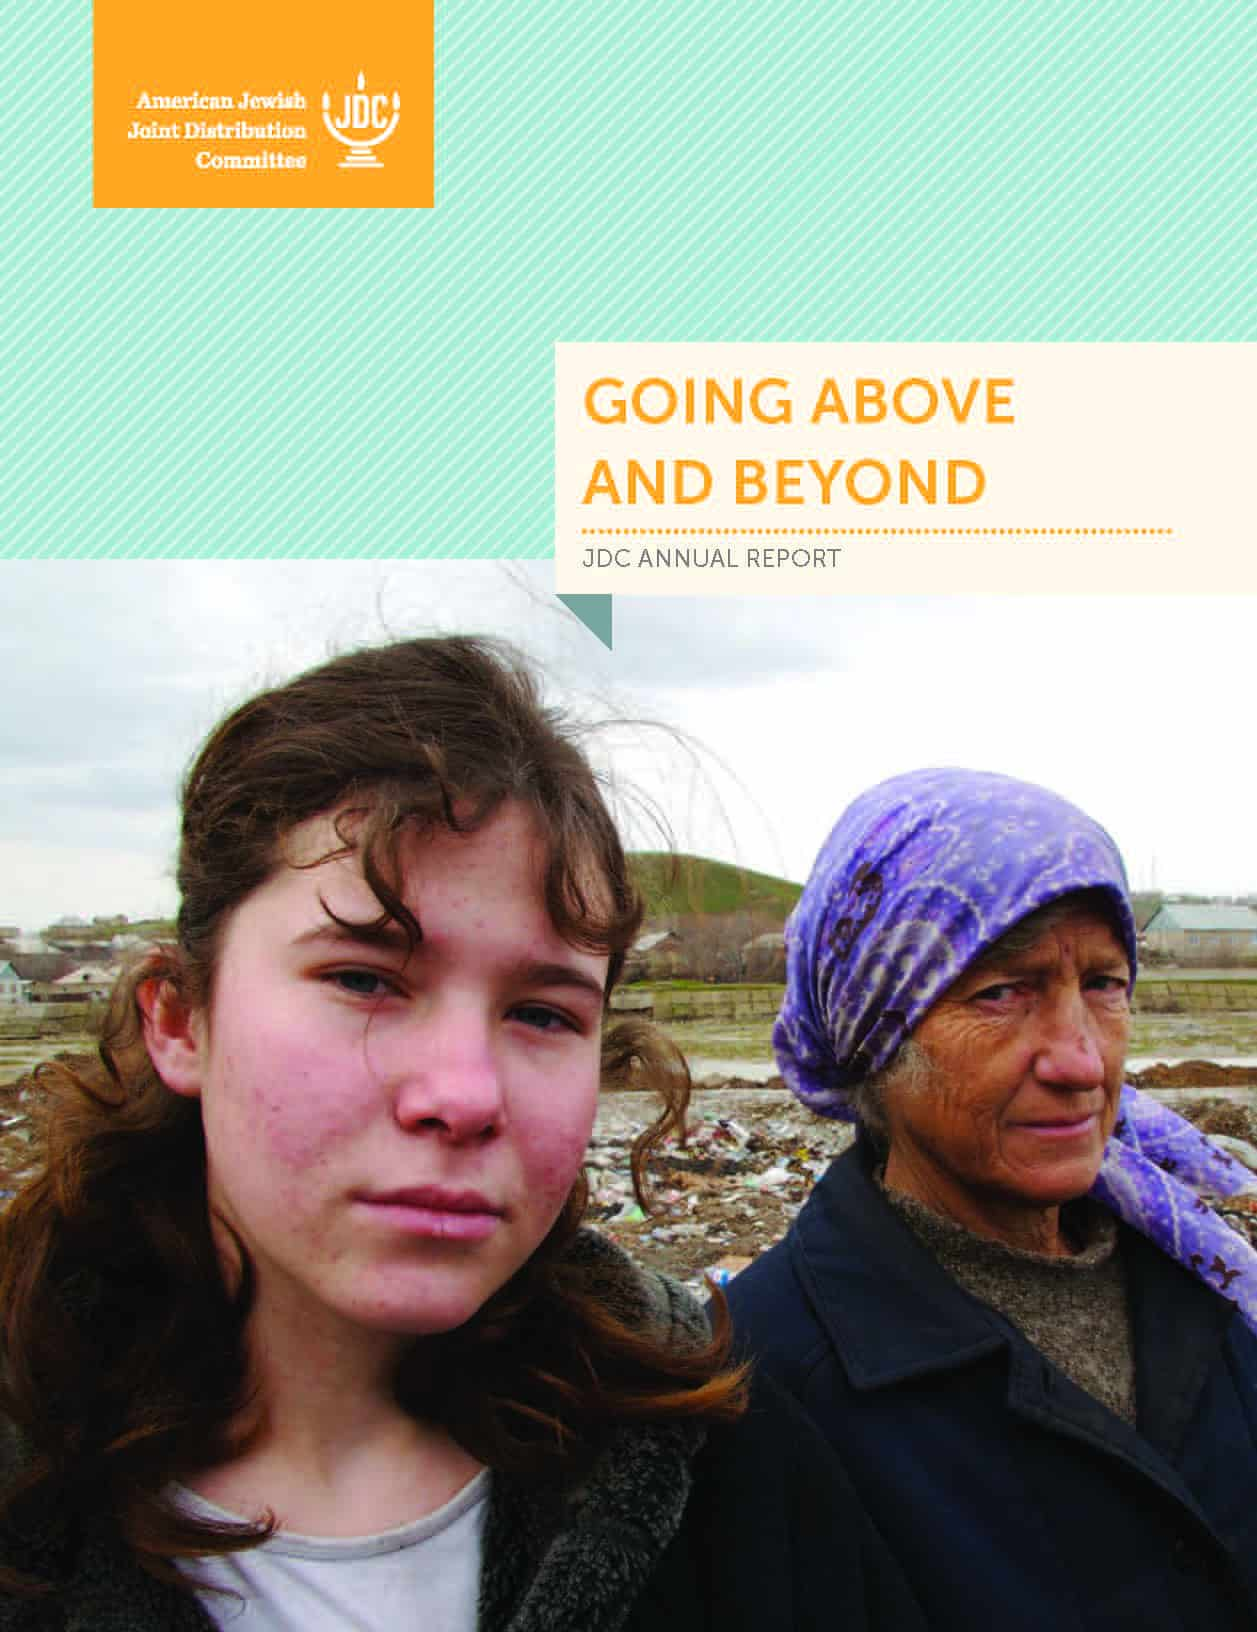 JDC's Annual Report 2012 showing a young woman and old woman with a purple headscarf in Shymkent, Uzebkistan.